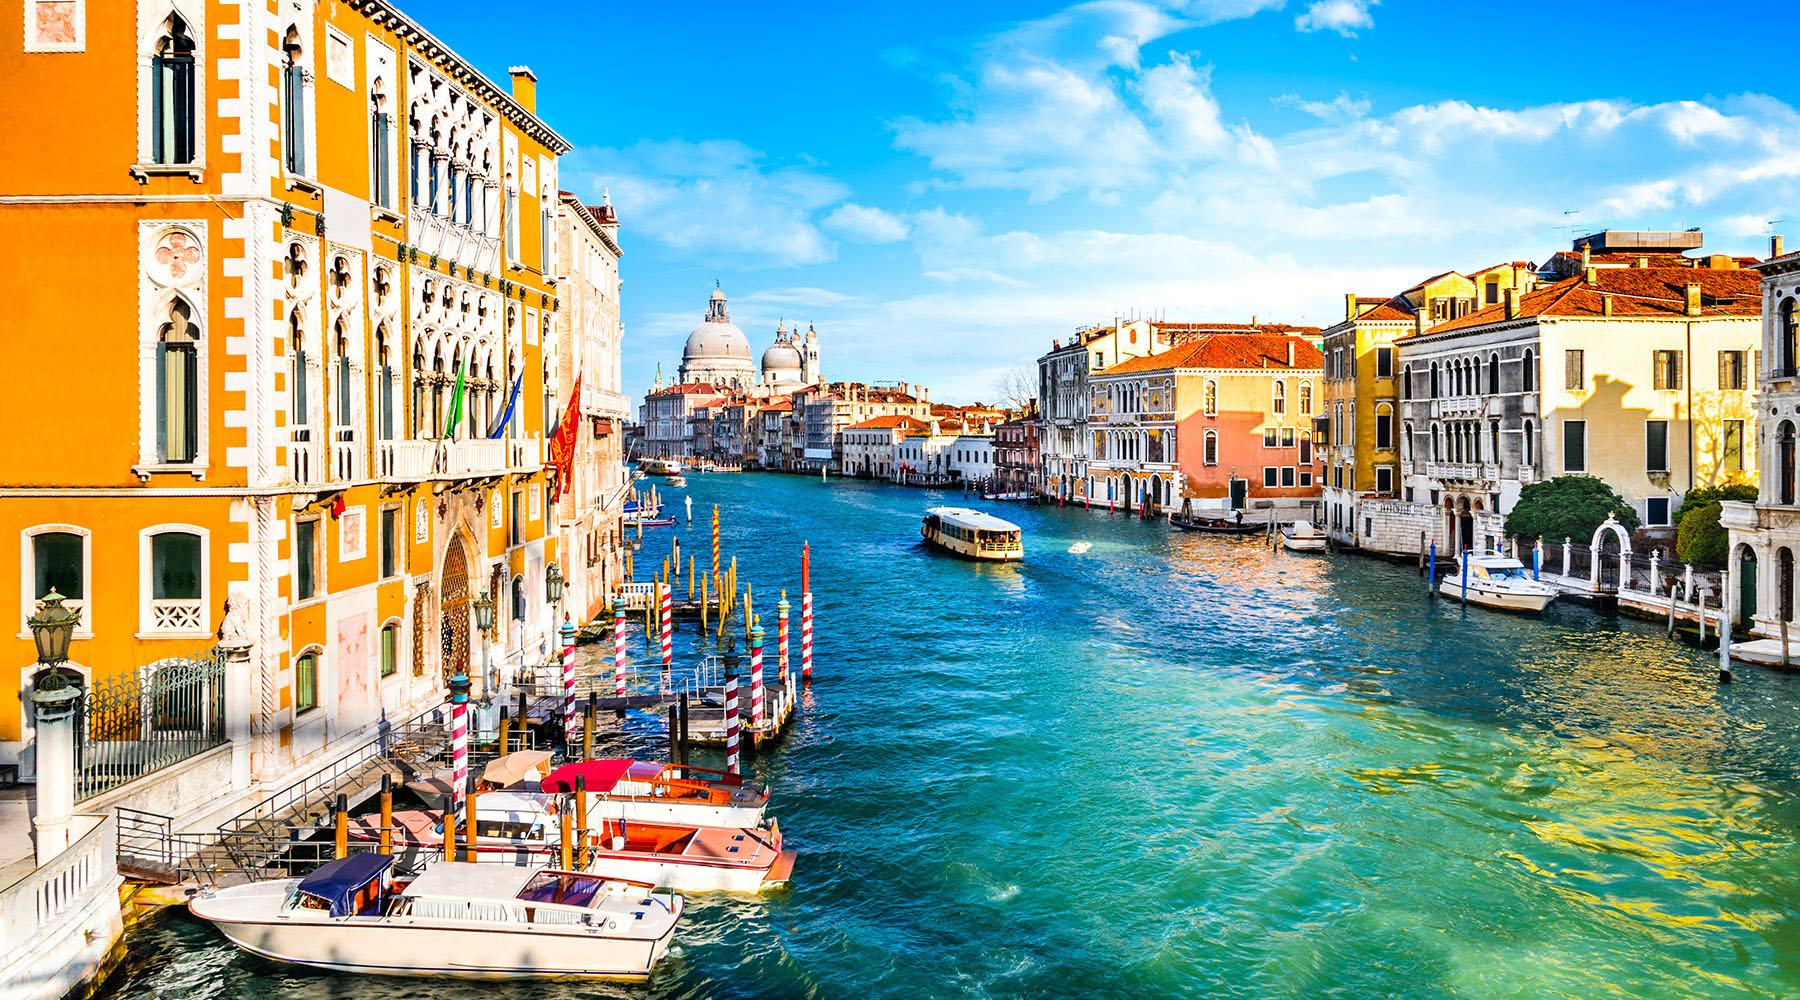 3-Night Weekend Pr Voyage & 3-Night Post Venice Stay